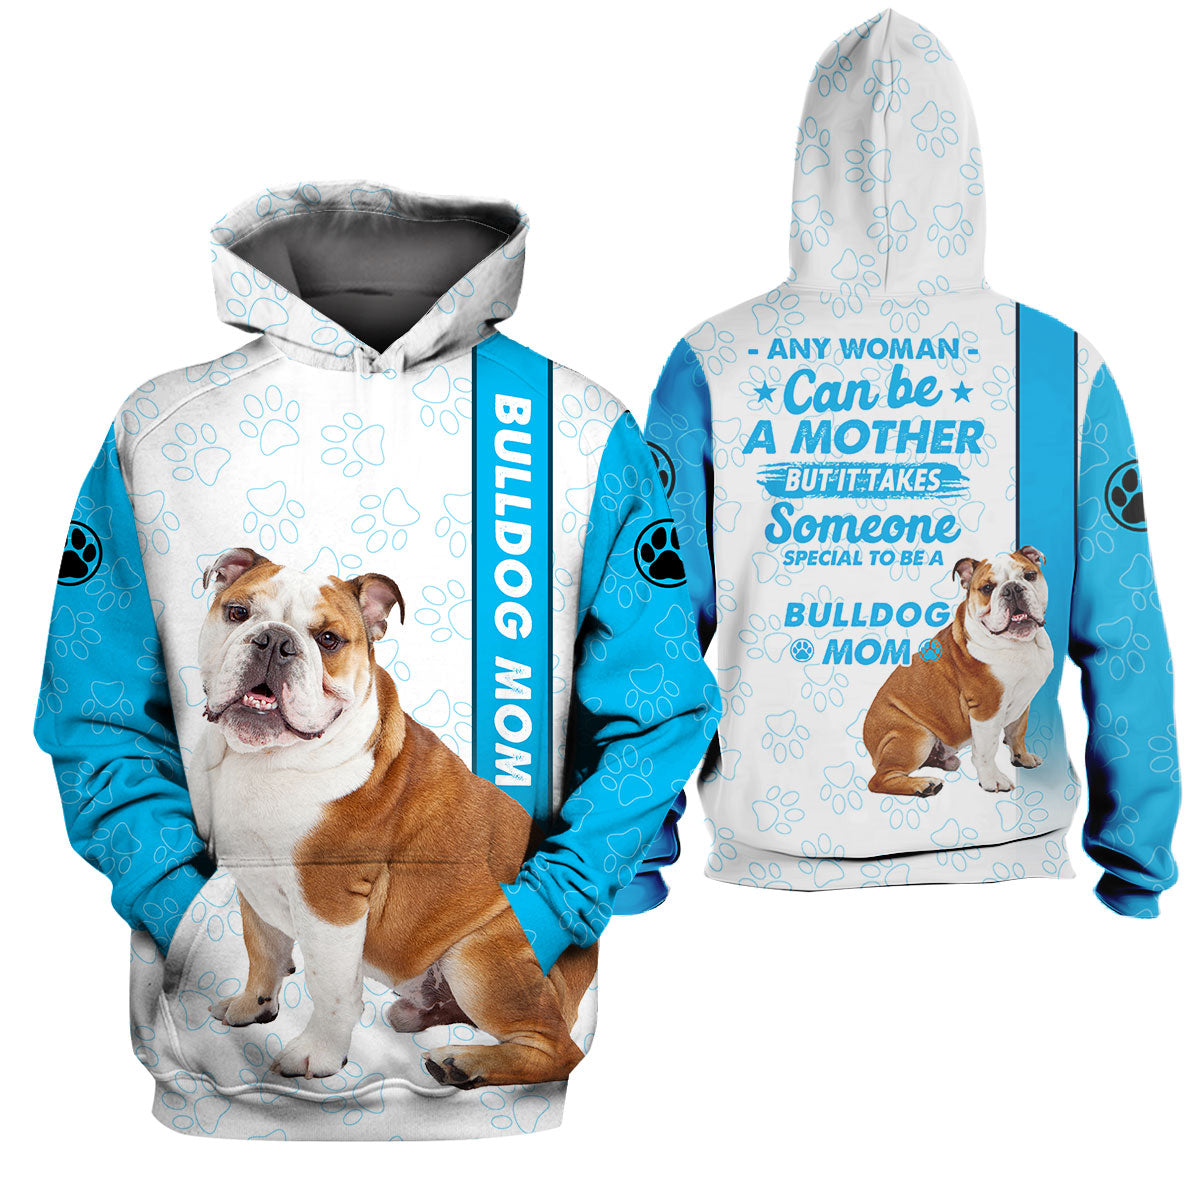 3d Apparel - Special to be a dog mom - Bulldog